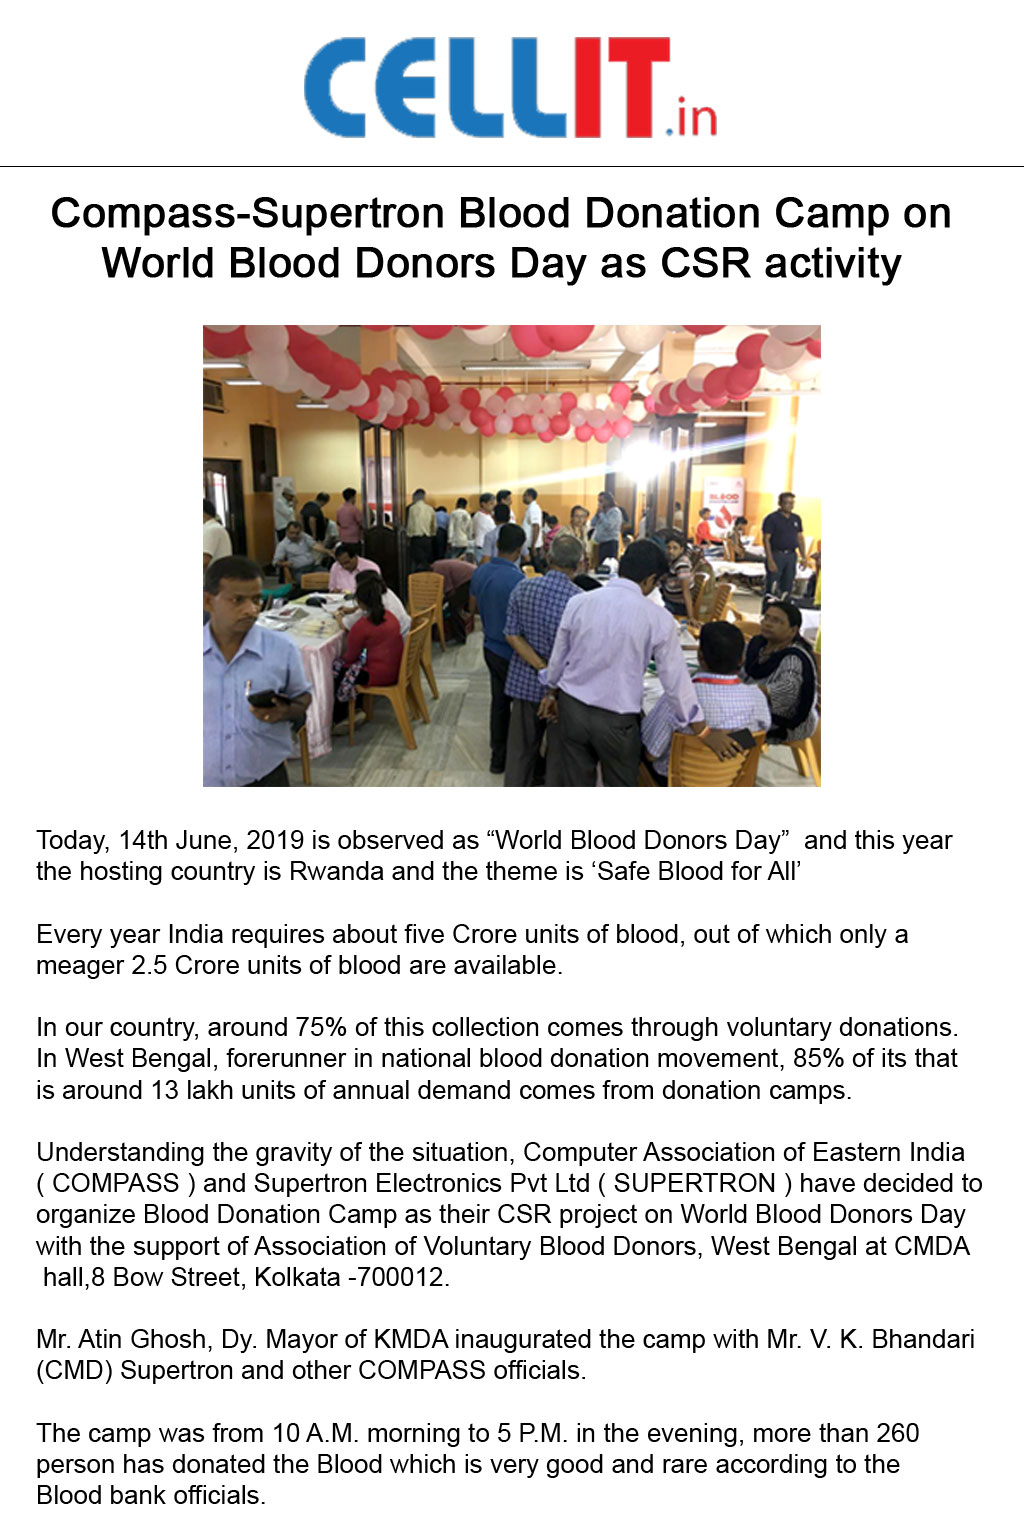 https://www.supertronindia.com/wp-content/uploads/2019/06/sipl-blood-donation.jpg